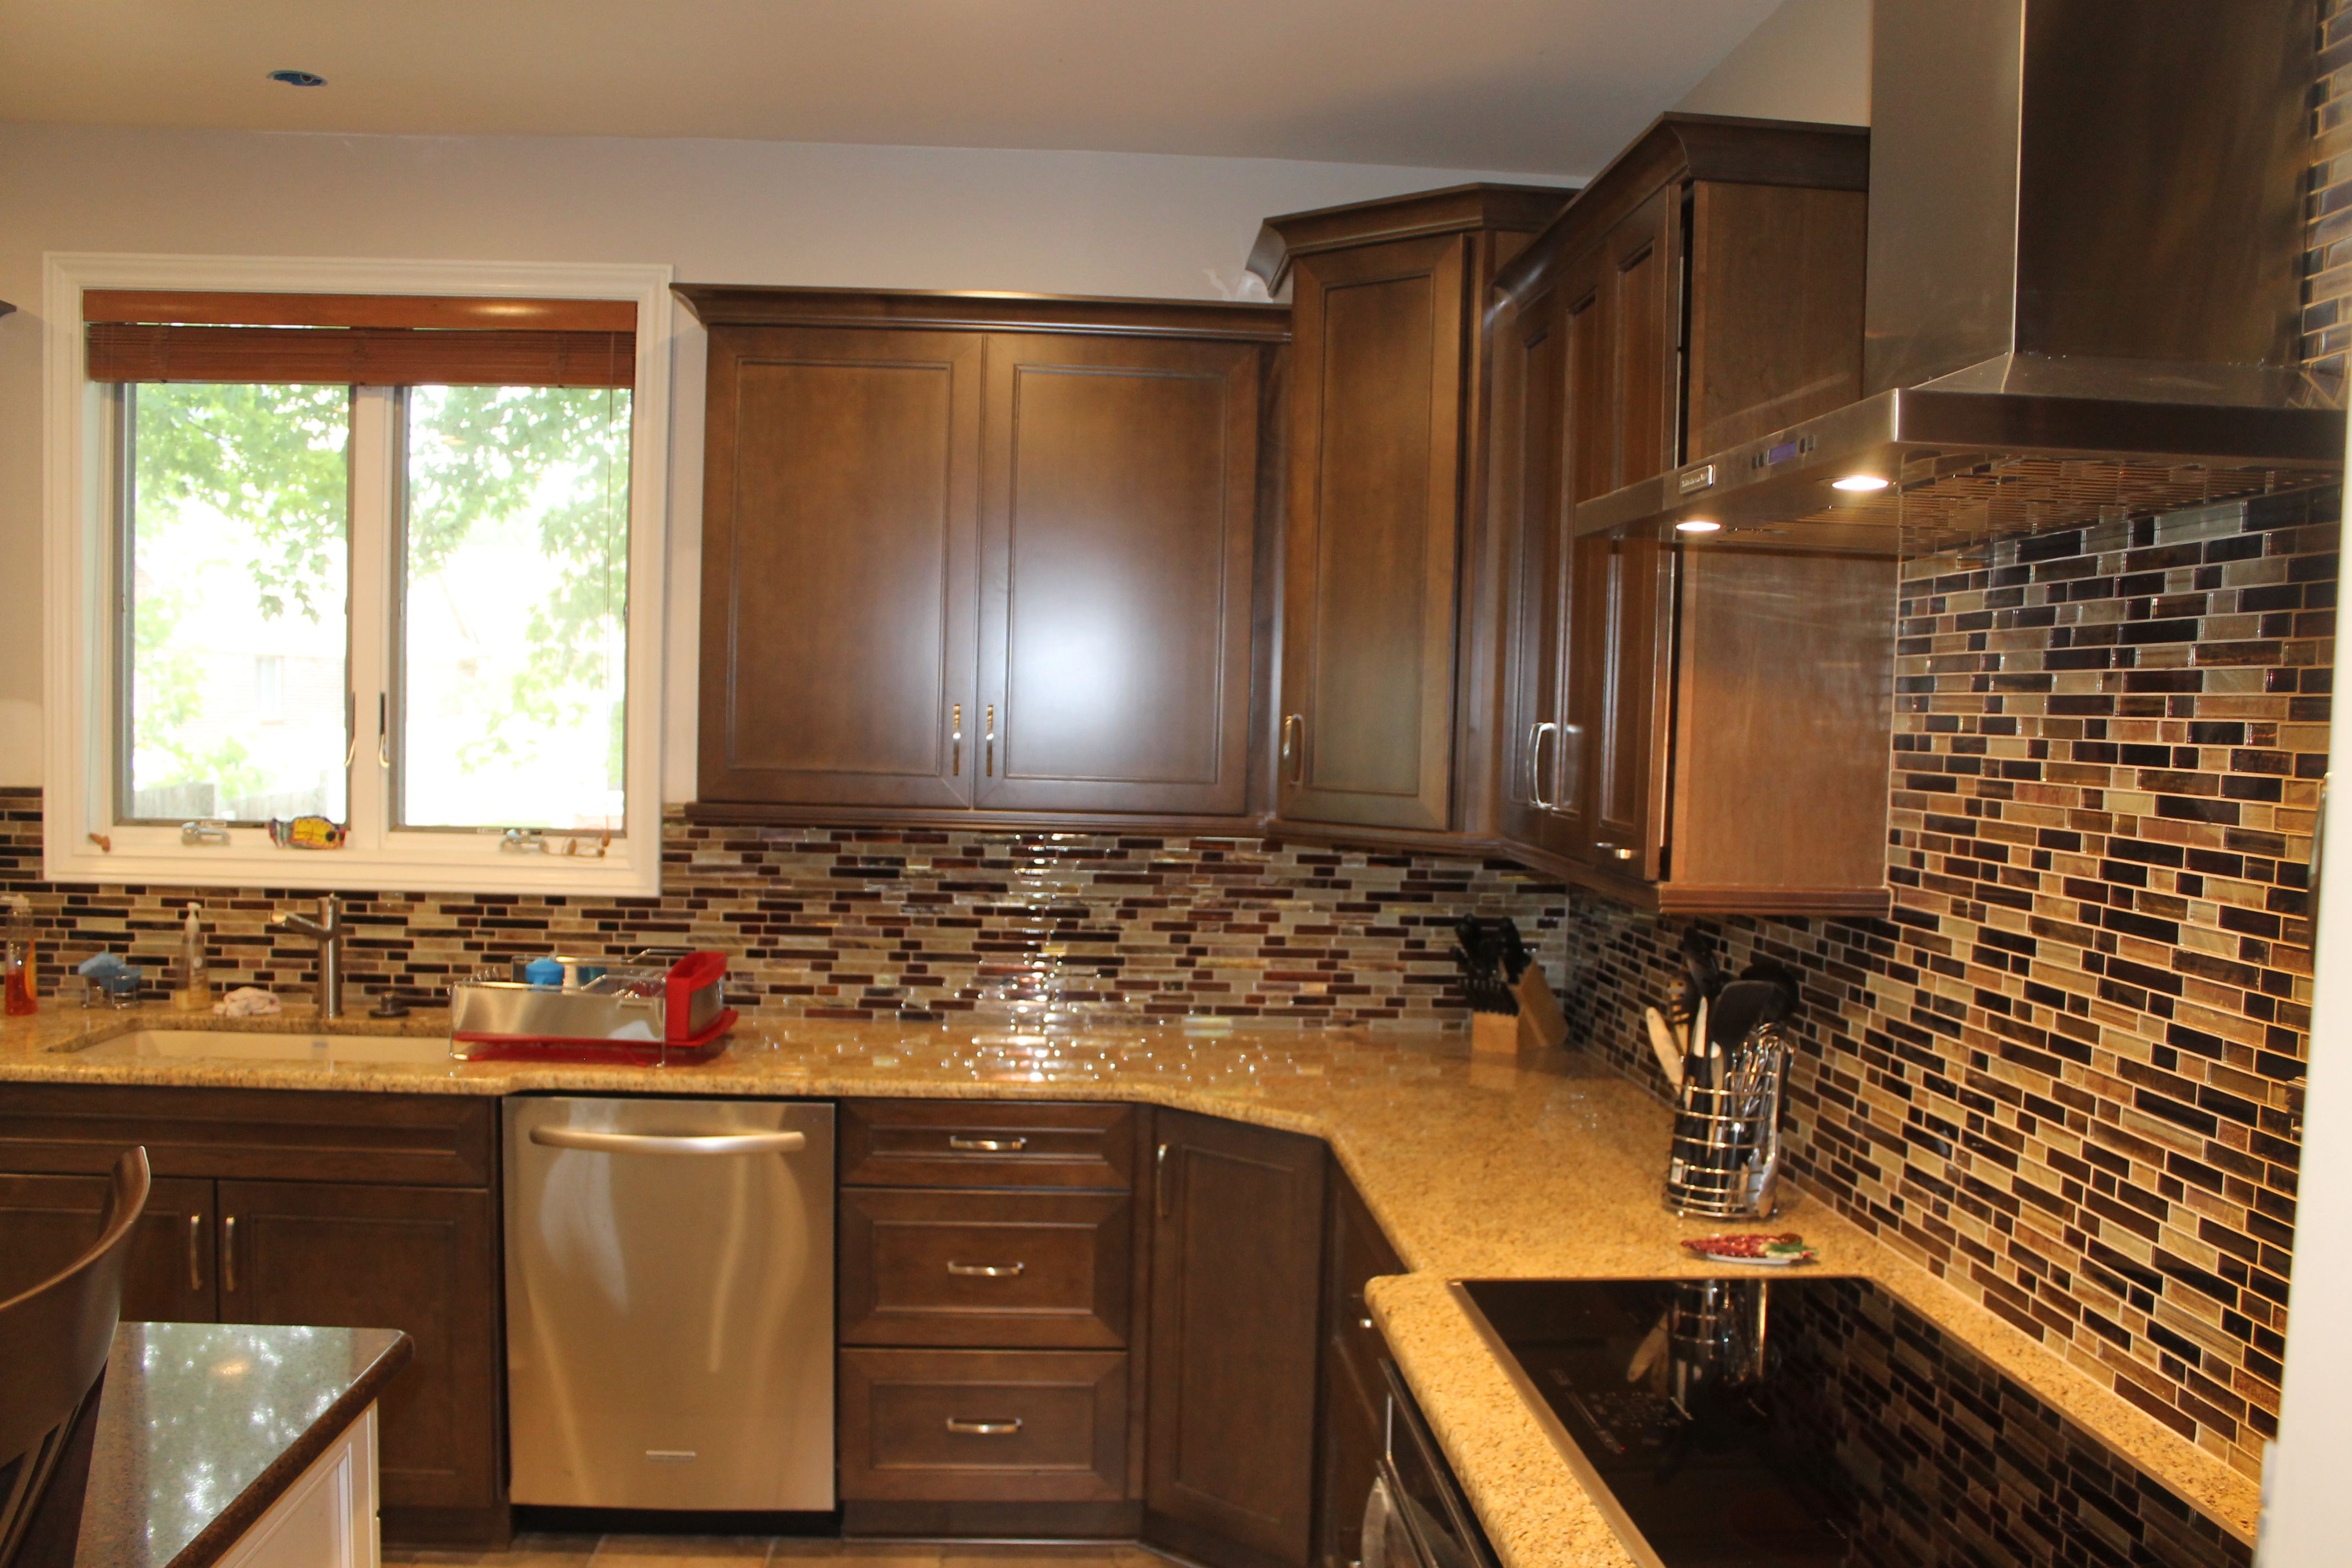 Medium Maple Cabinets with light Granite countertops and ... on Backsplash Ideas For Dark Cabinets And Light Countertops  id=63688